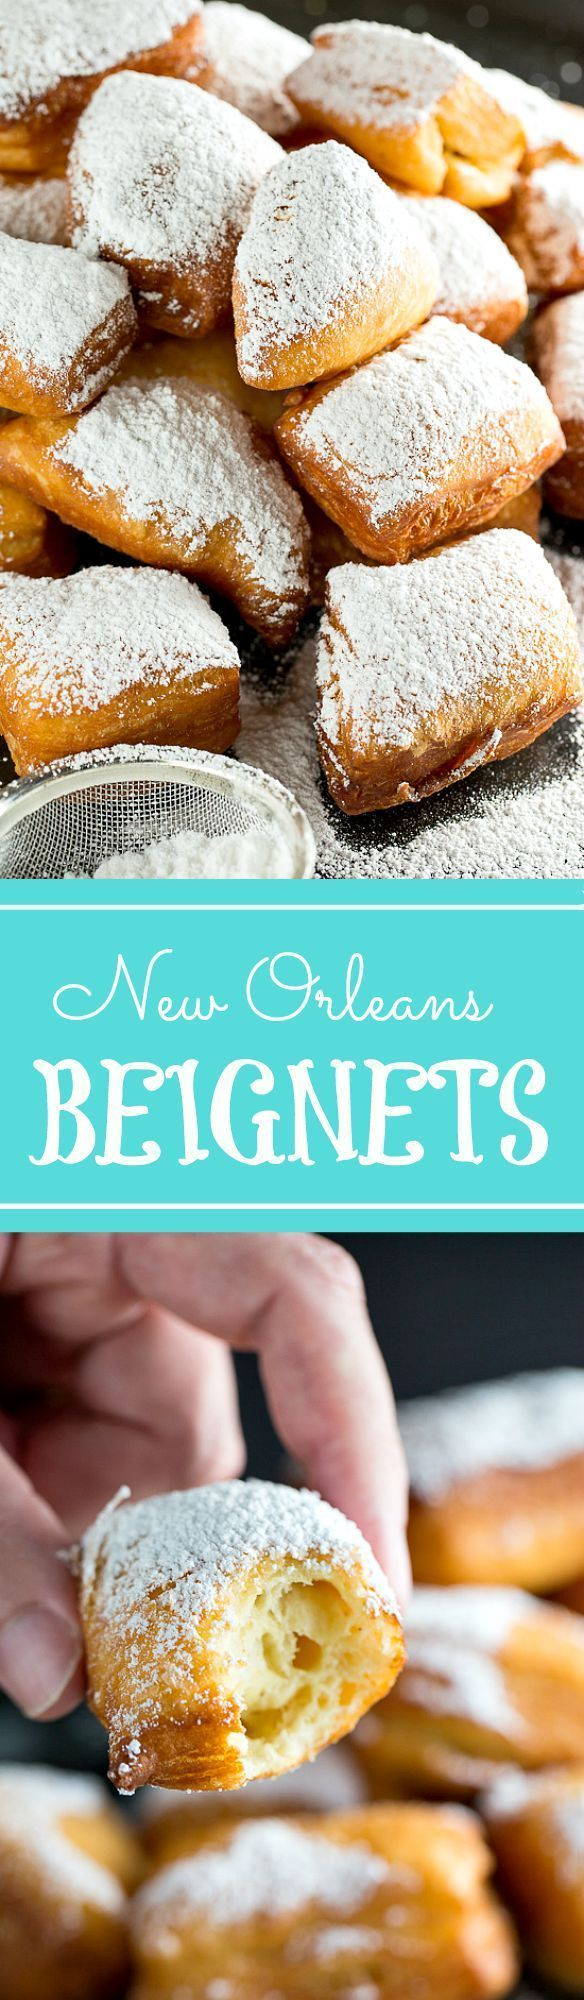 55 best Southern Inspired Recipes images on Pinterest | Kitchens ...